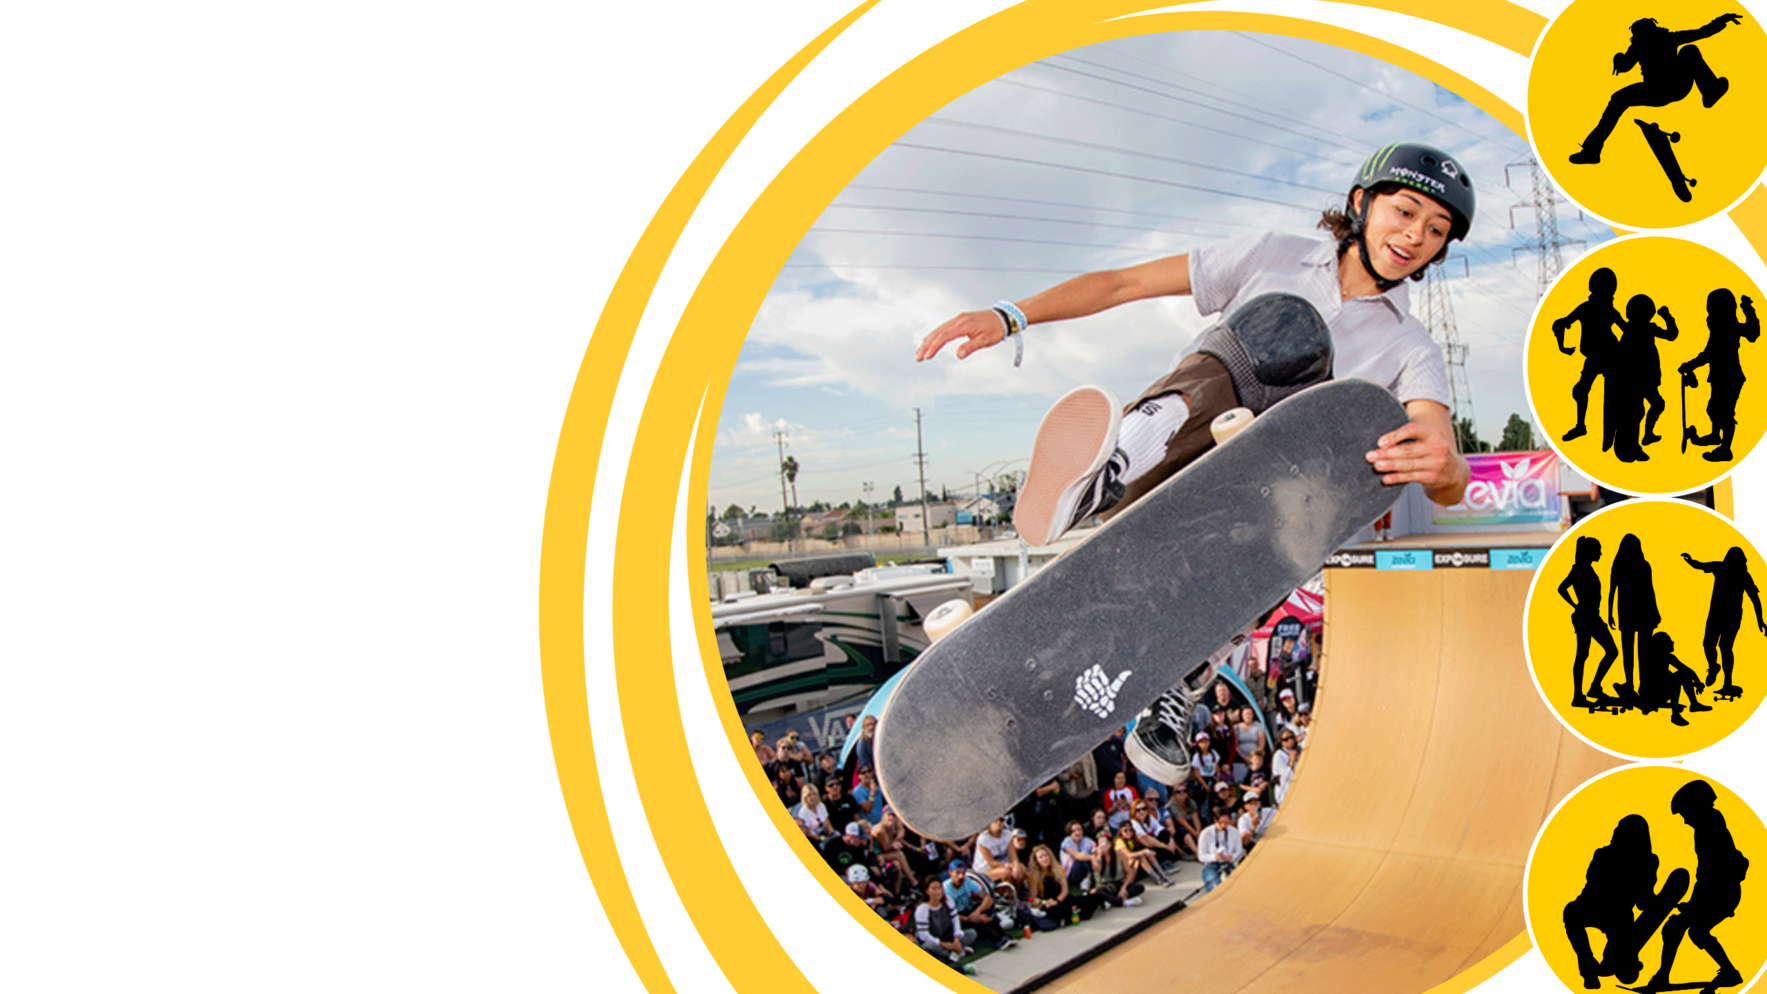 Give today to empower women and girls through skateboarding image